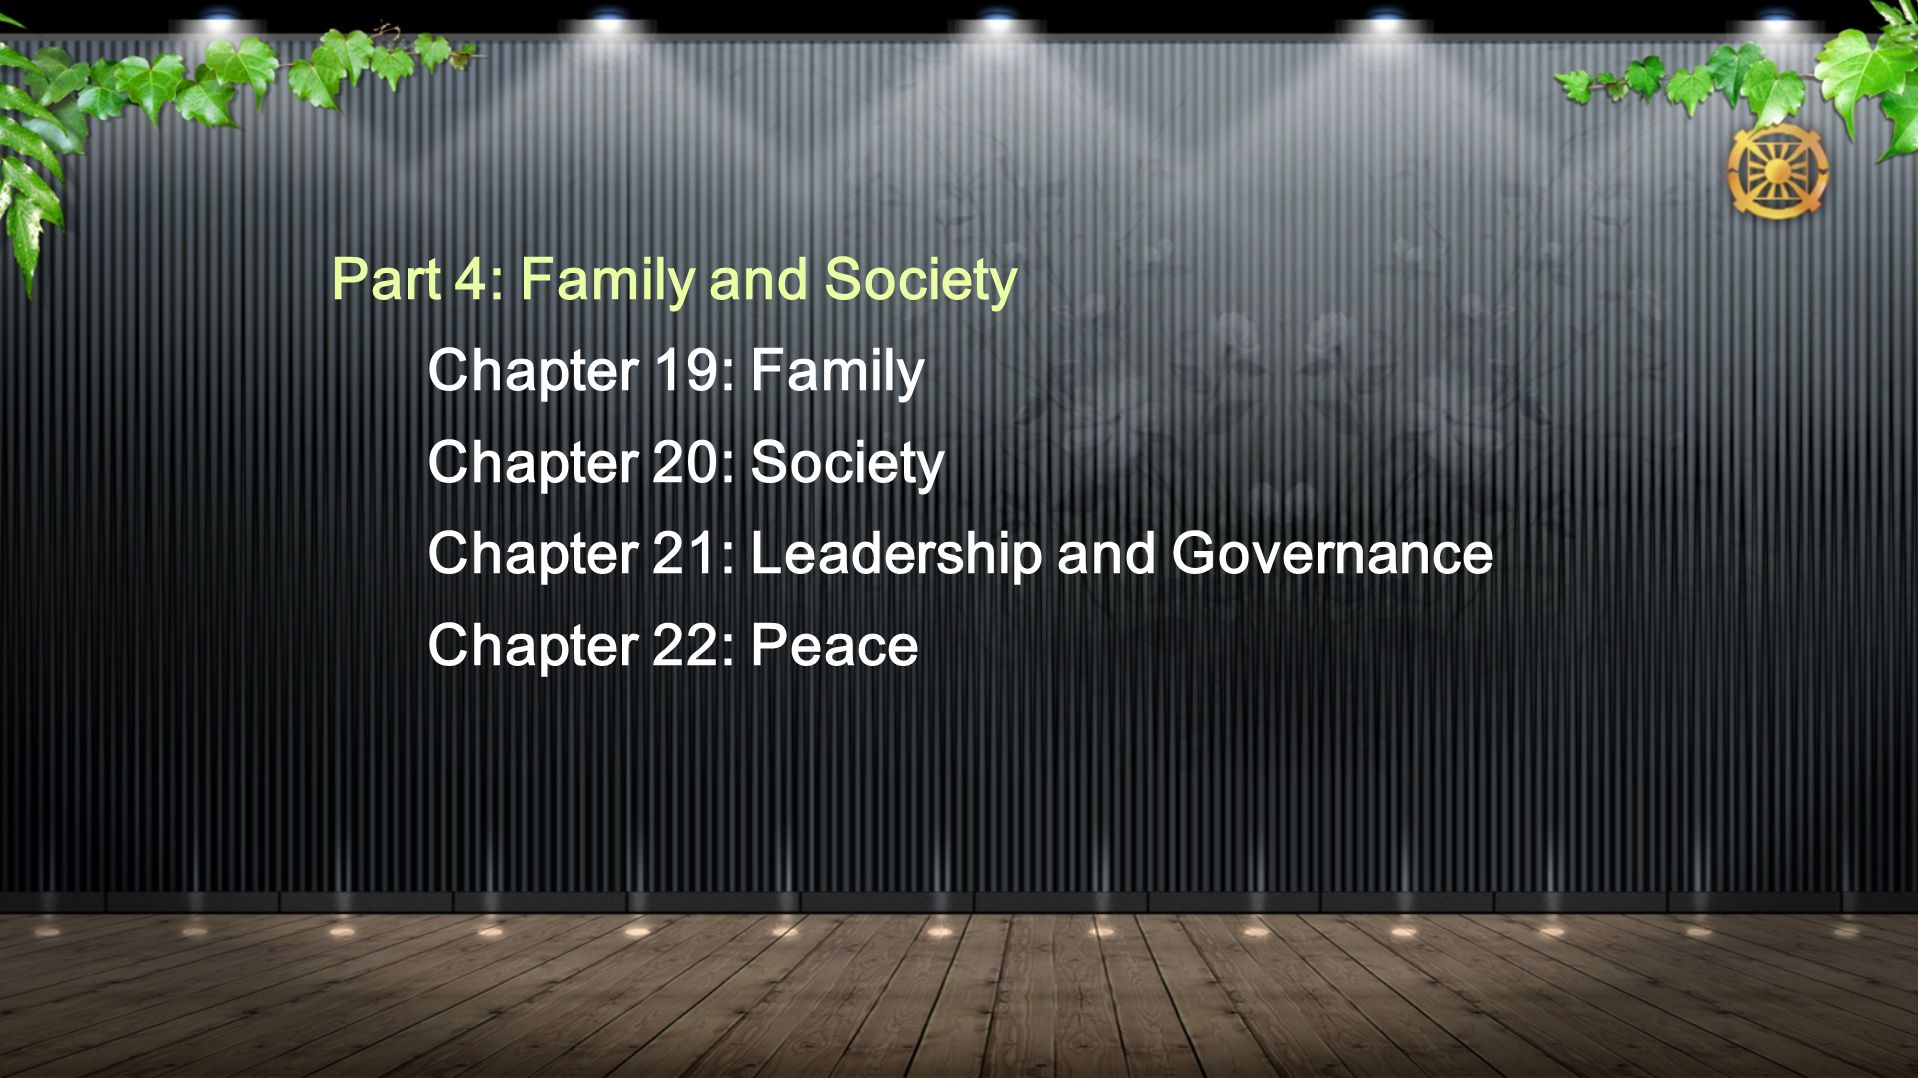 Part 4: Family and Society Chapter 19: Family Chapter 20: Society Chapter 21: Leadership and Governance Chapter 22: Peace